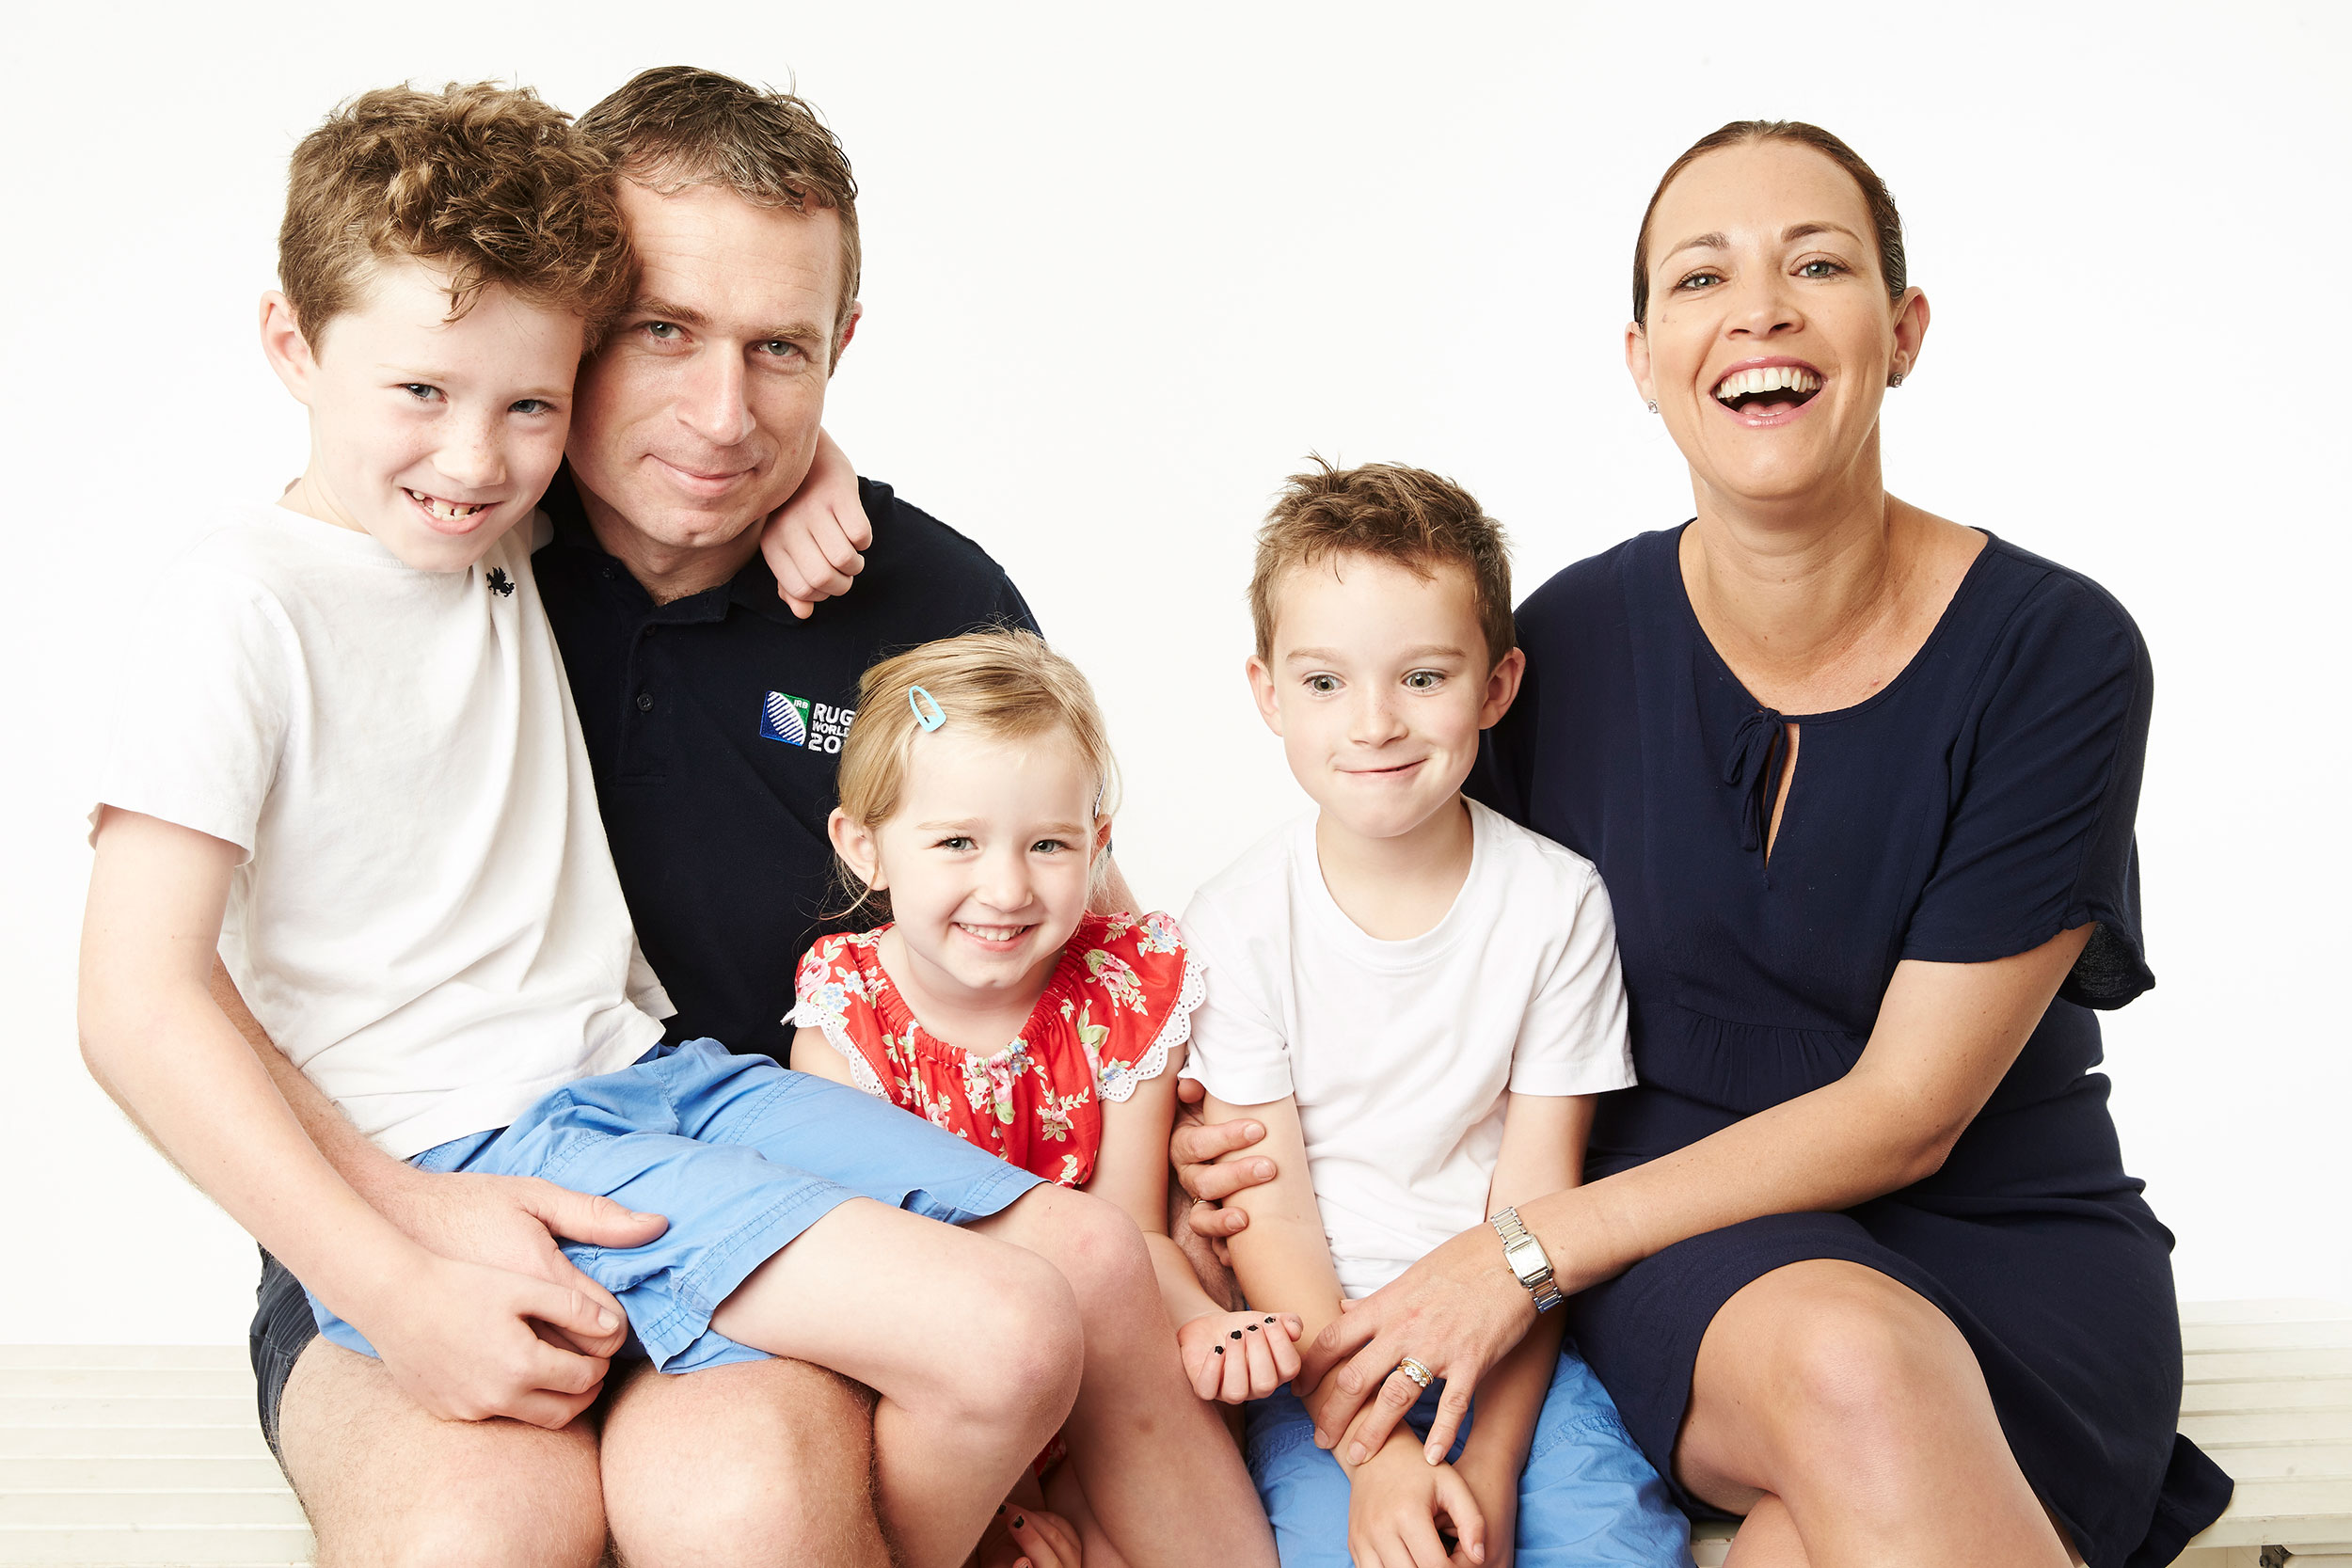 ABOUT US - Cathy Shortt - milk and mums co.